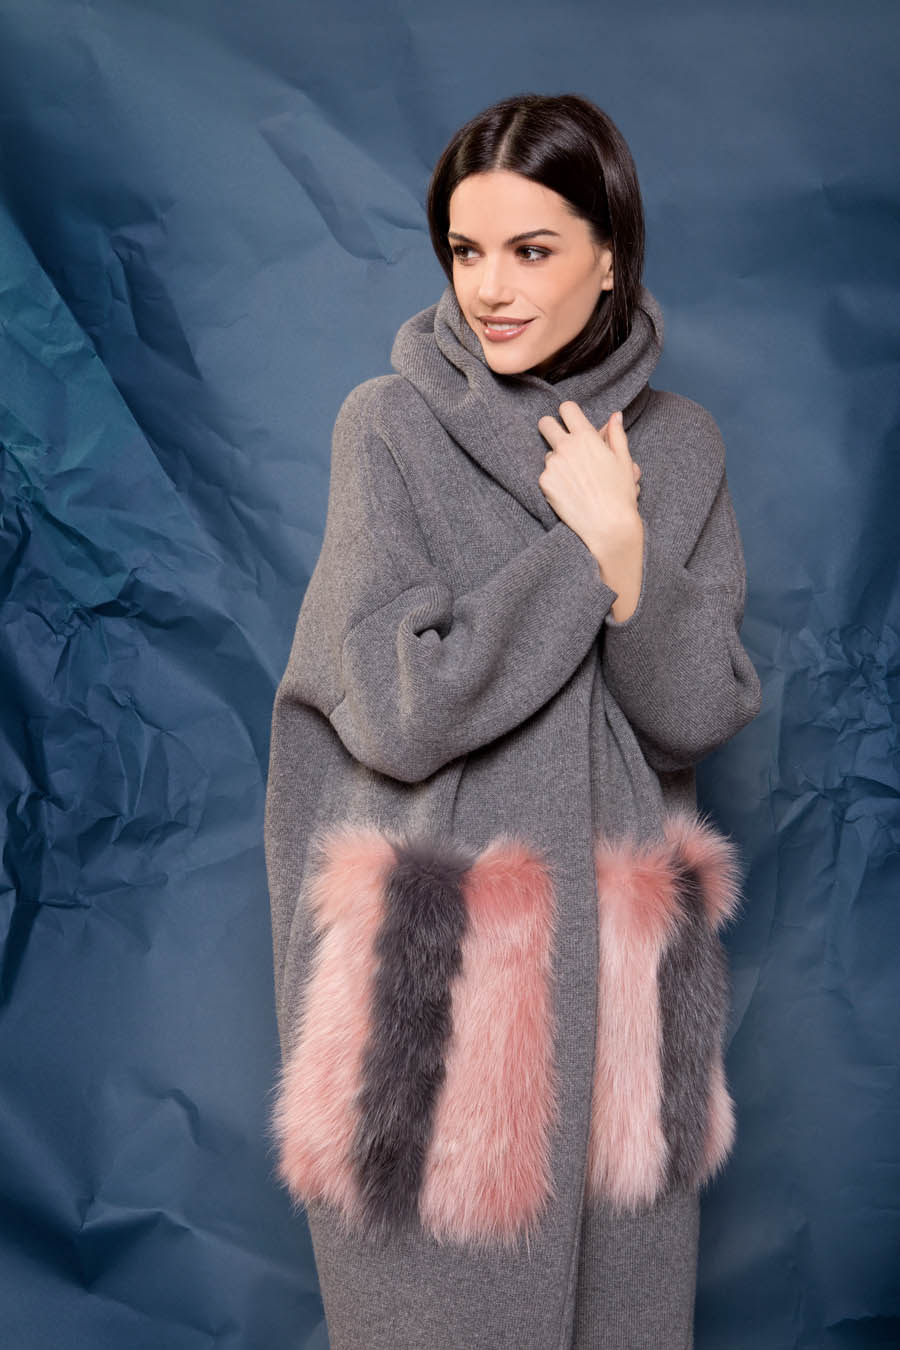 73 P1922 03 02 giovi pelliccia fur grey pink - Fall Winter 2019-20